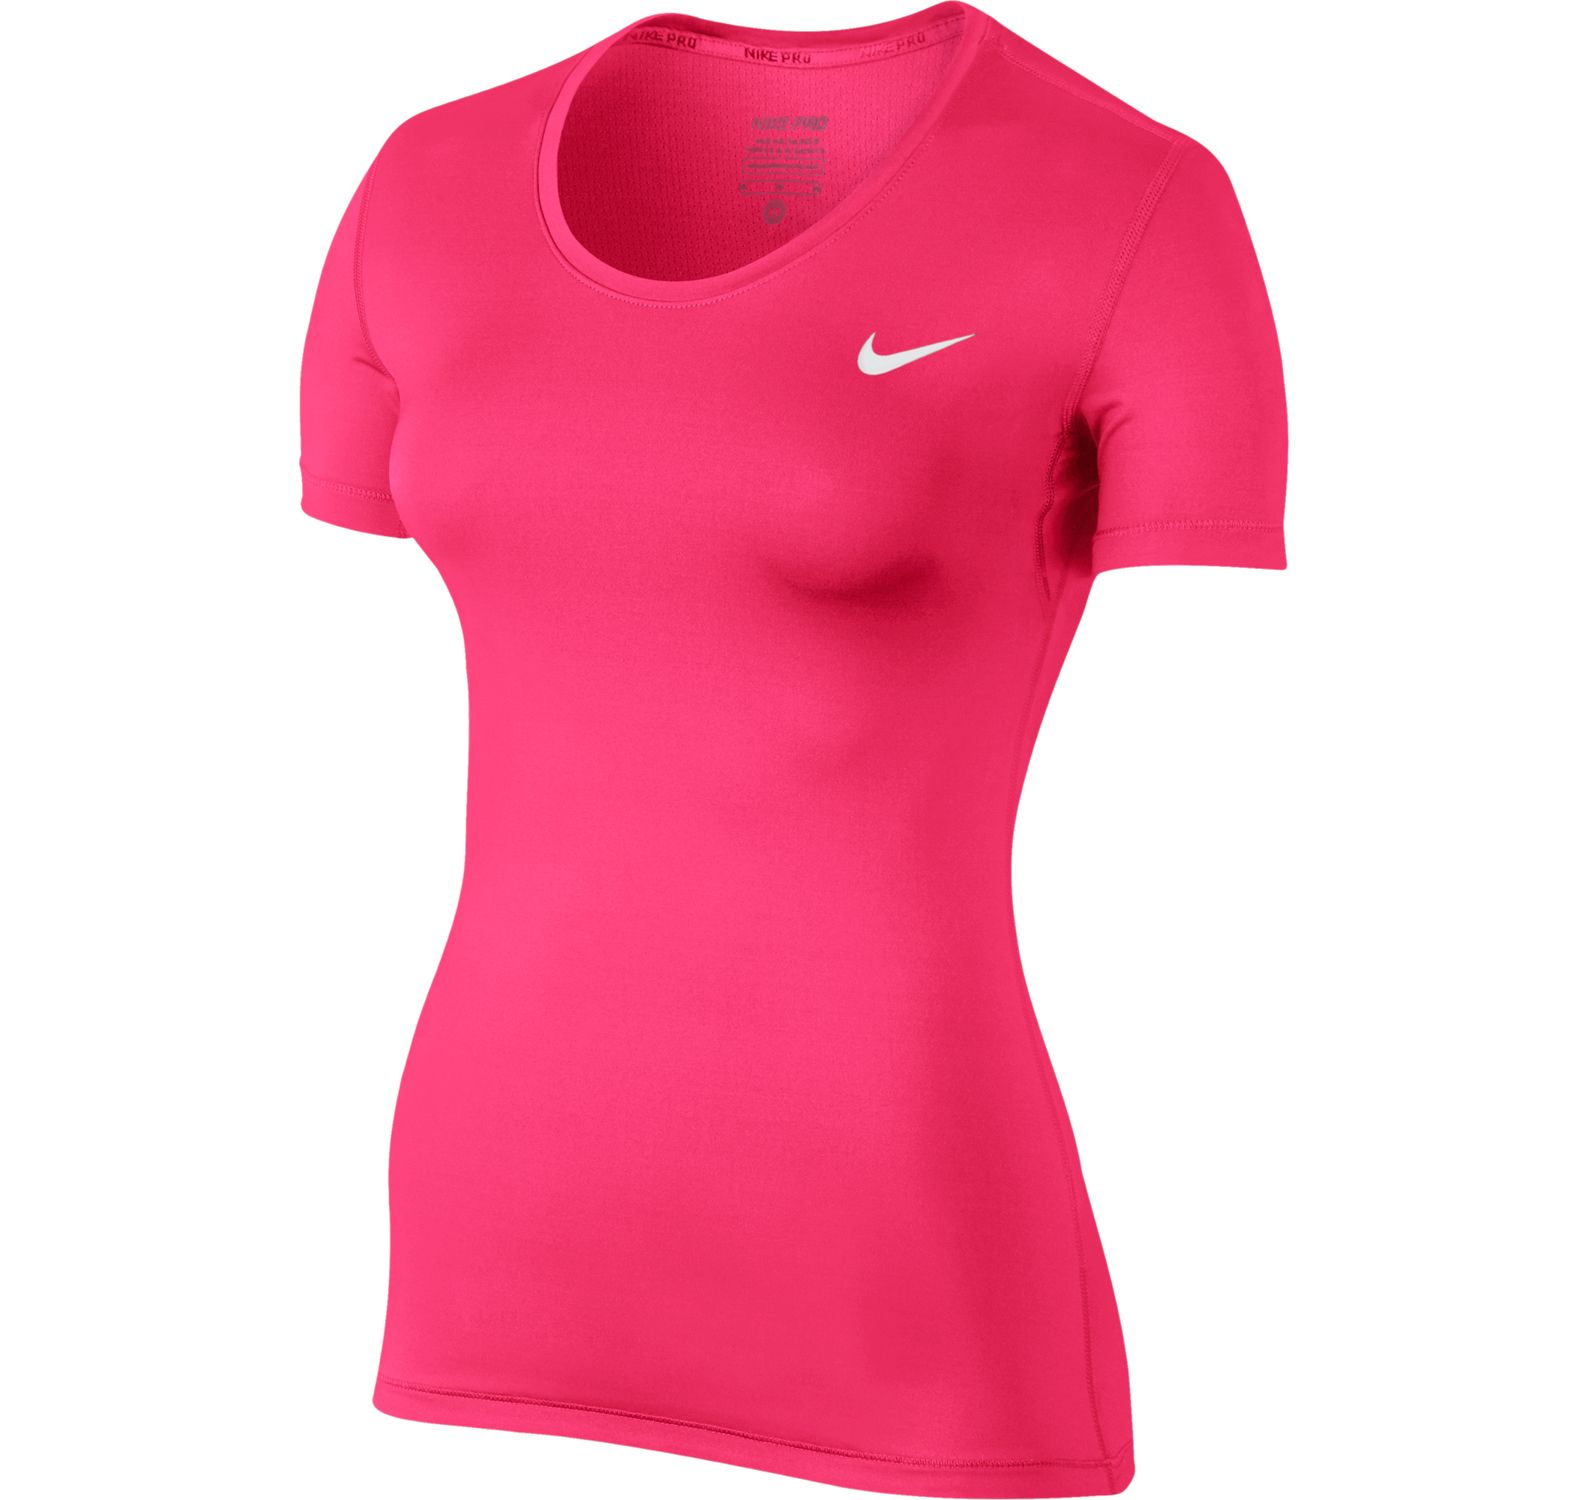 W Np Top Ss, Racer Pink/White, L,  Nike